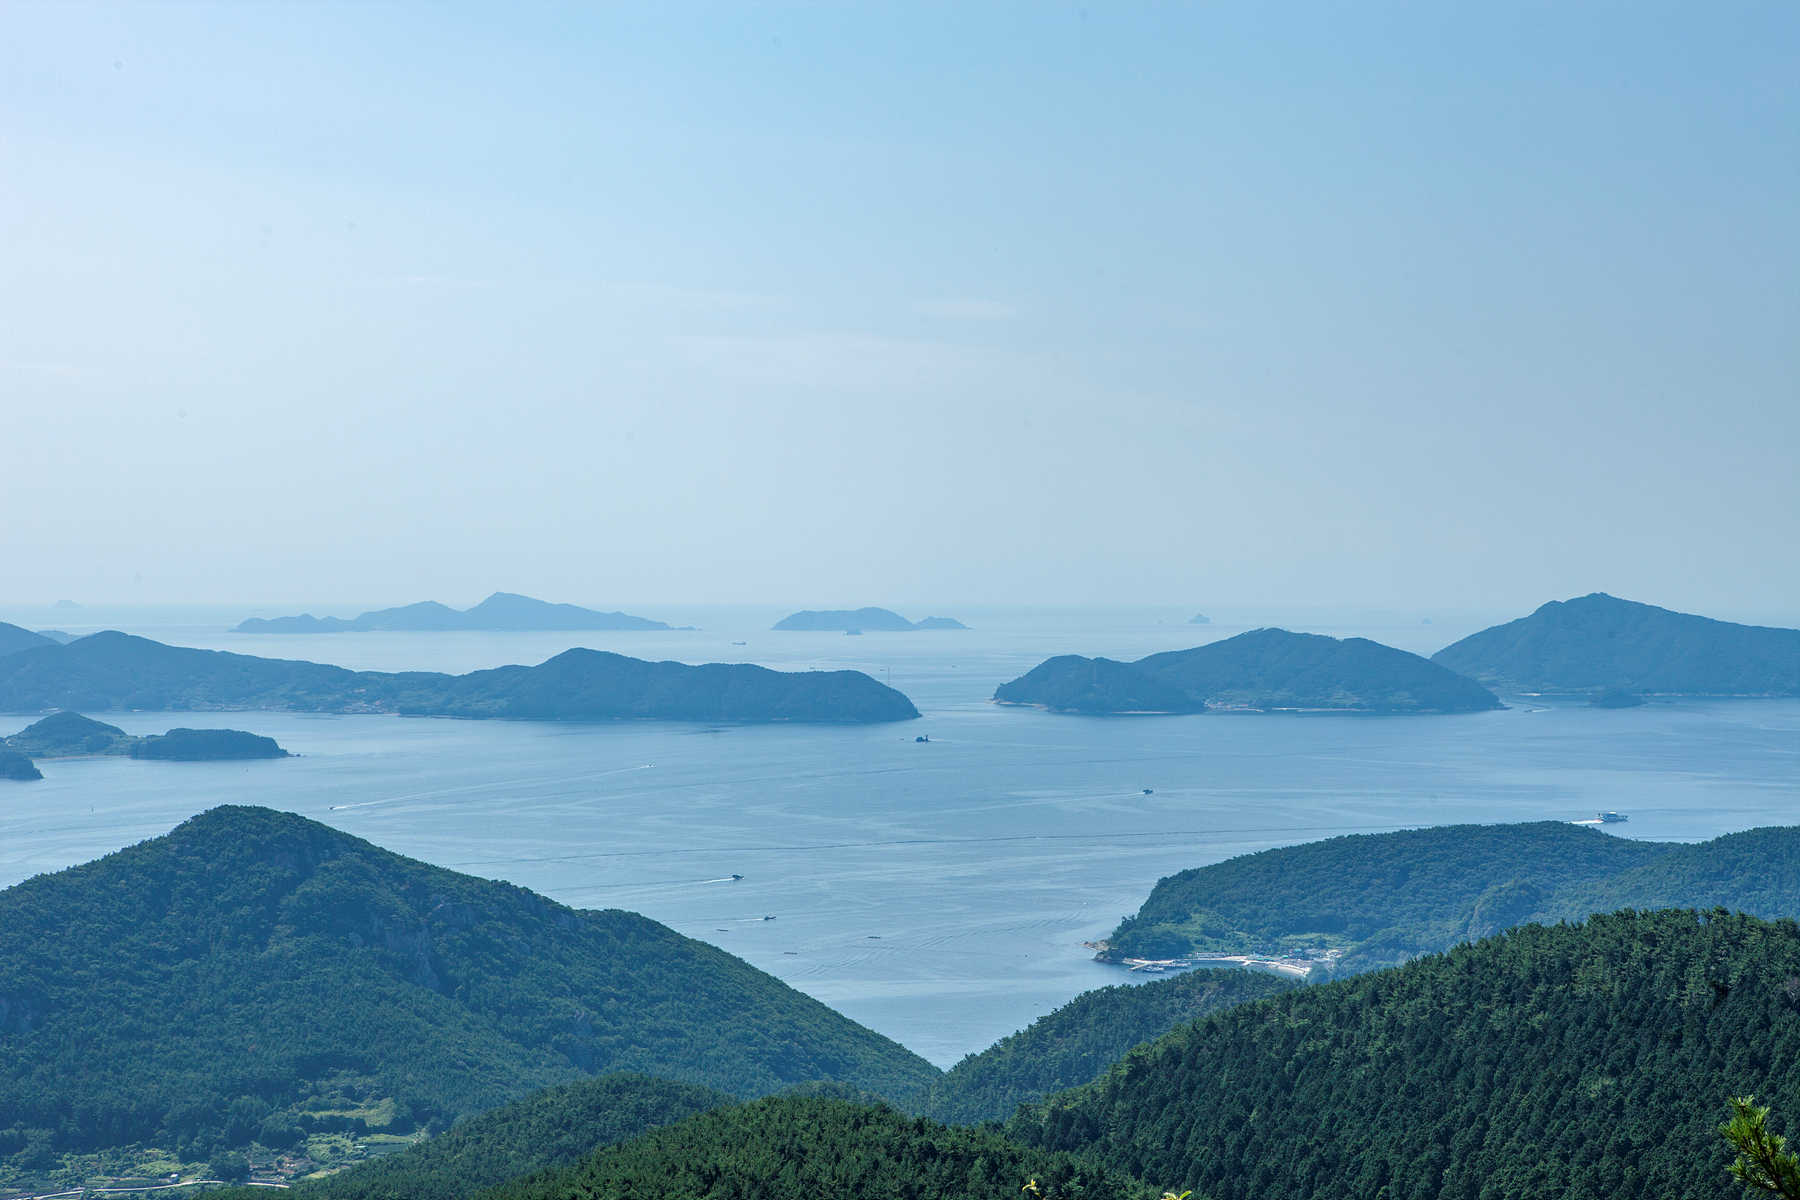 Mt. Mireuk, a towering mountain in the middle of Tongyeong City, is one of the 100 most famous mountains at 461 meters above sea level